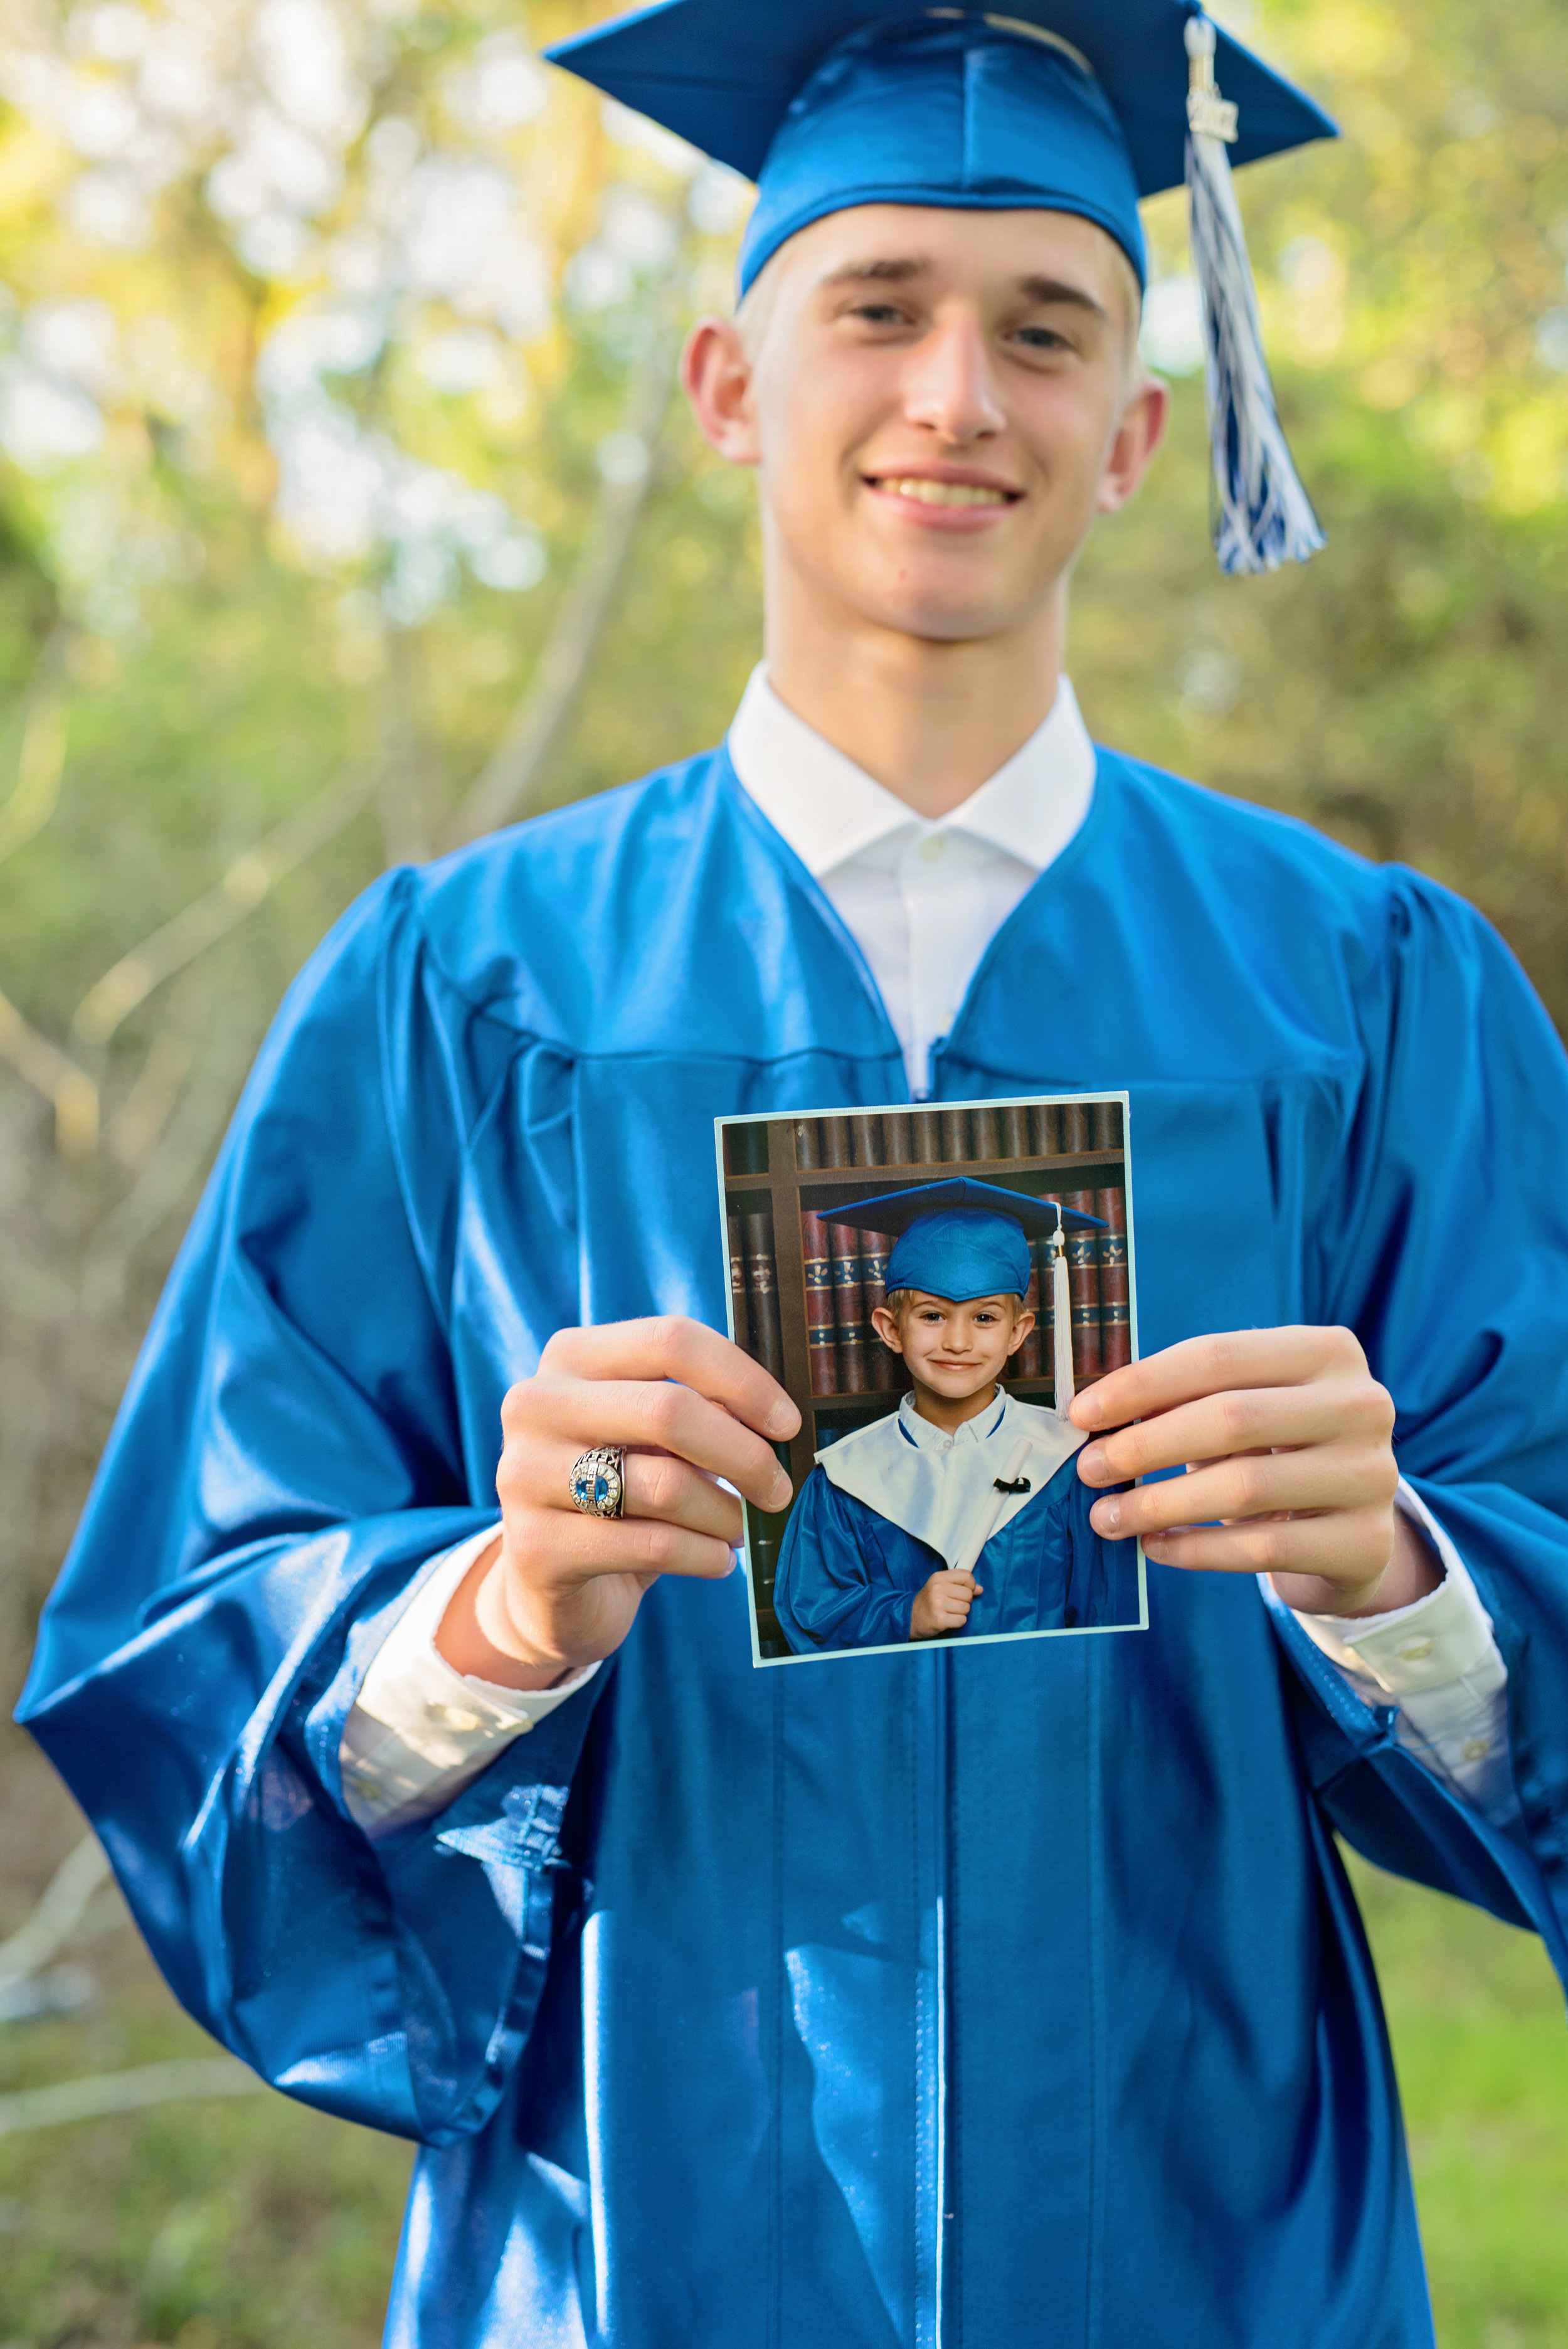 senior cap and gown with kindergarten cap and gown photo